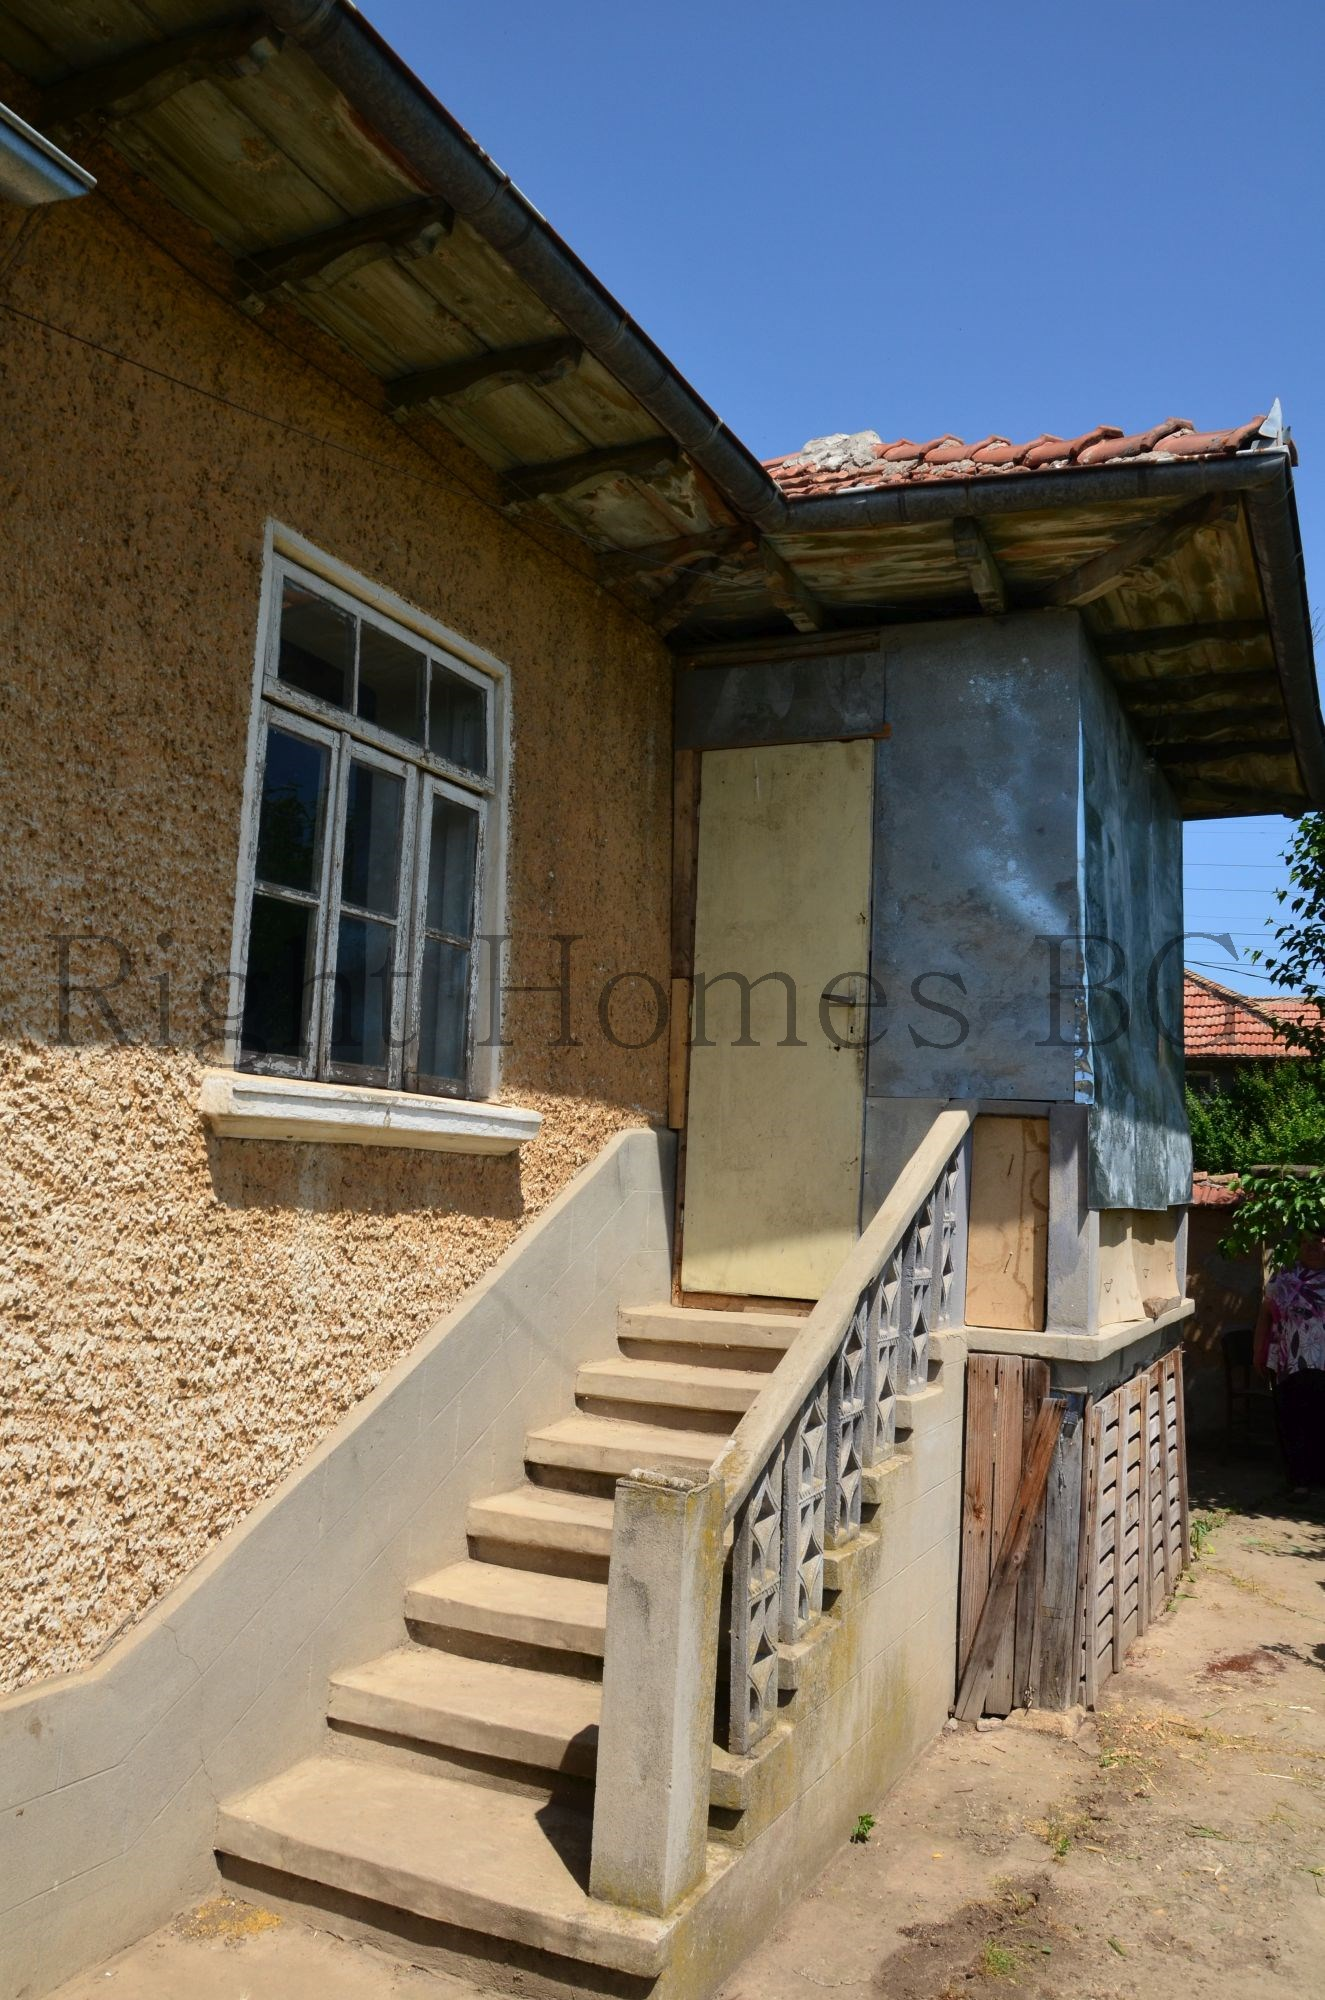 Cheap 2 Bedroom House For Rent: Cheap 2 Bedroom House In Quiet Village Pavel, Polski